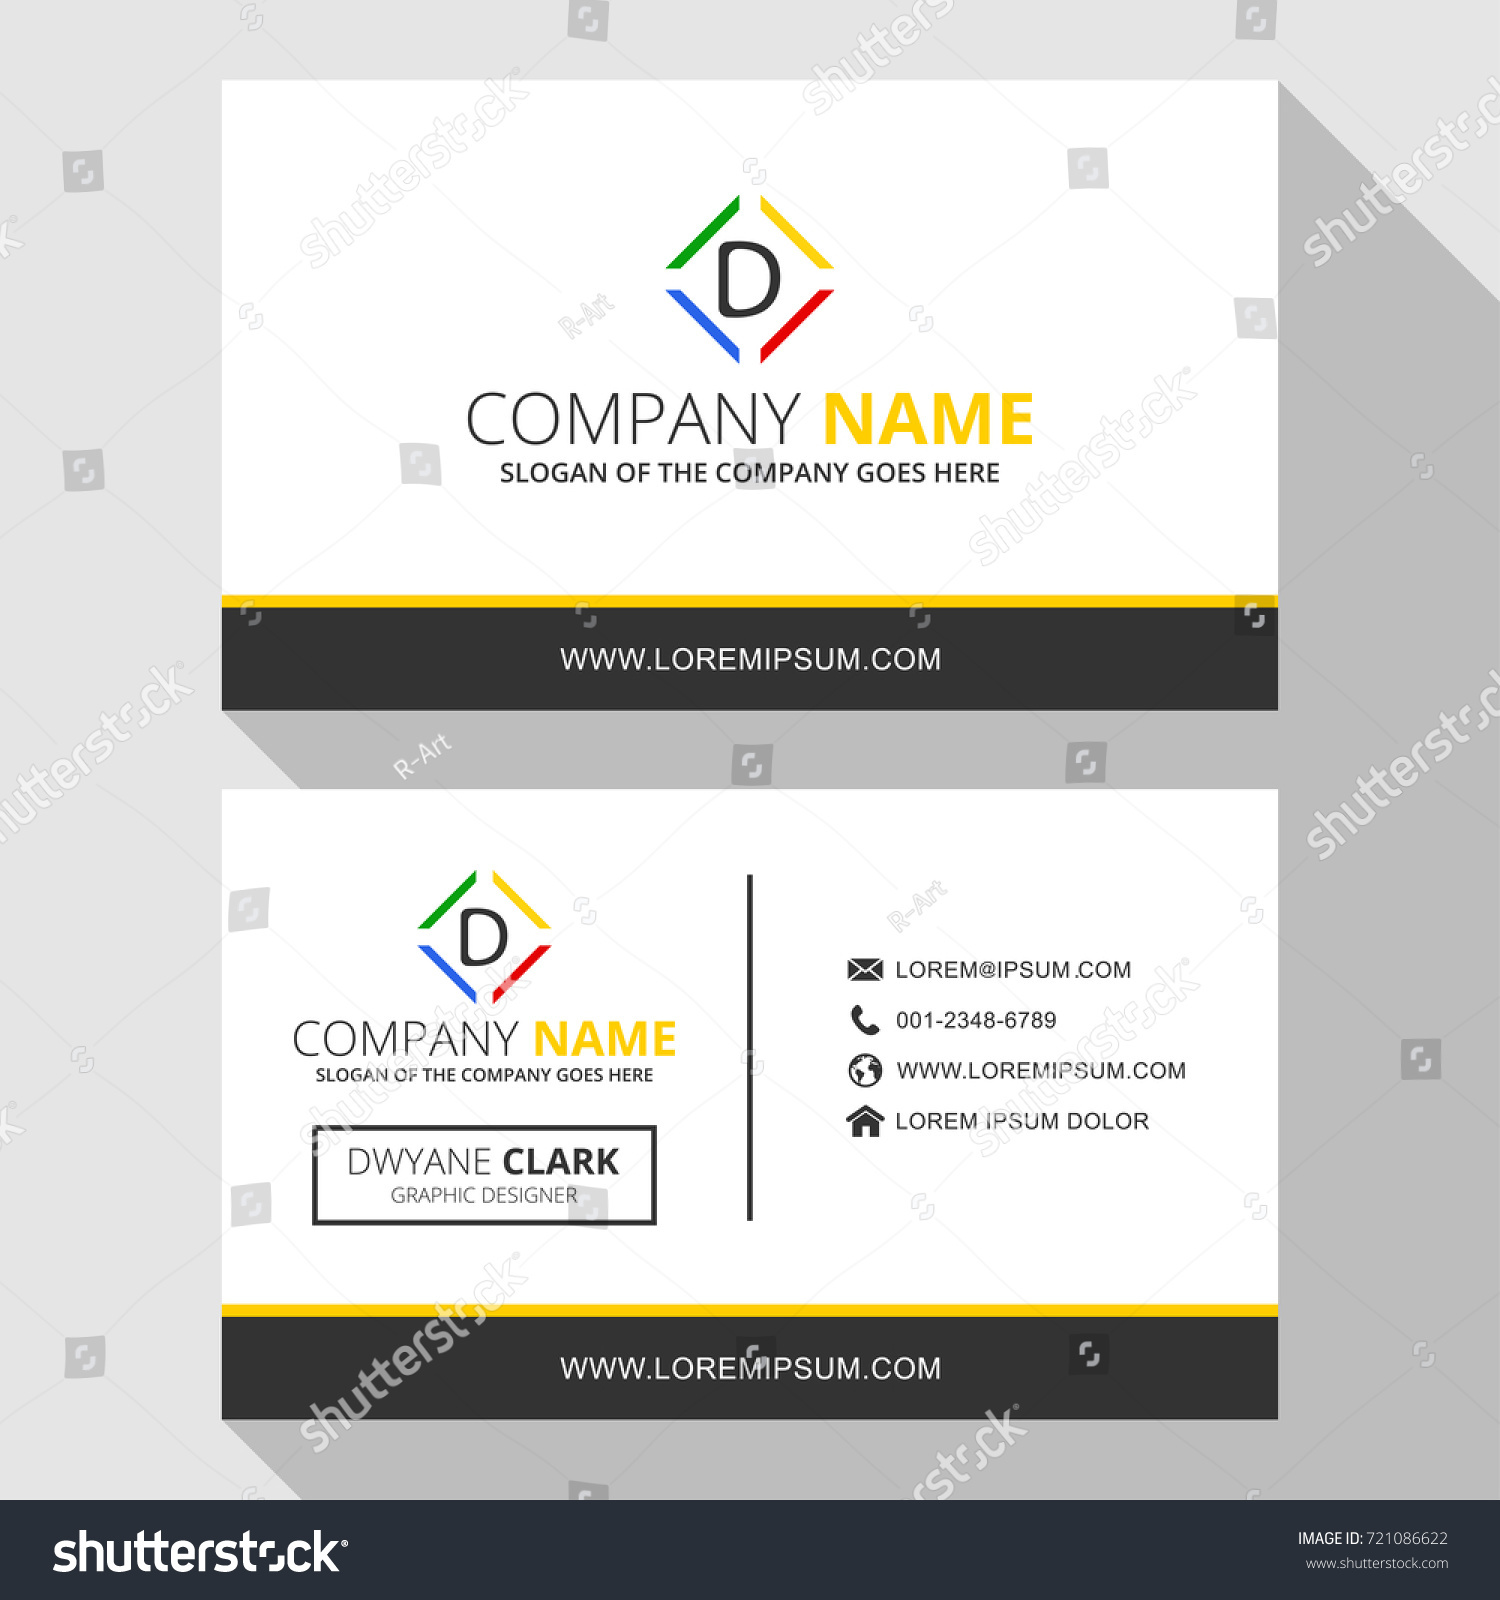 Business Cards With Logo Design Choice Image - Free Business Cards